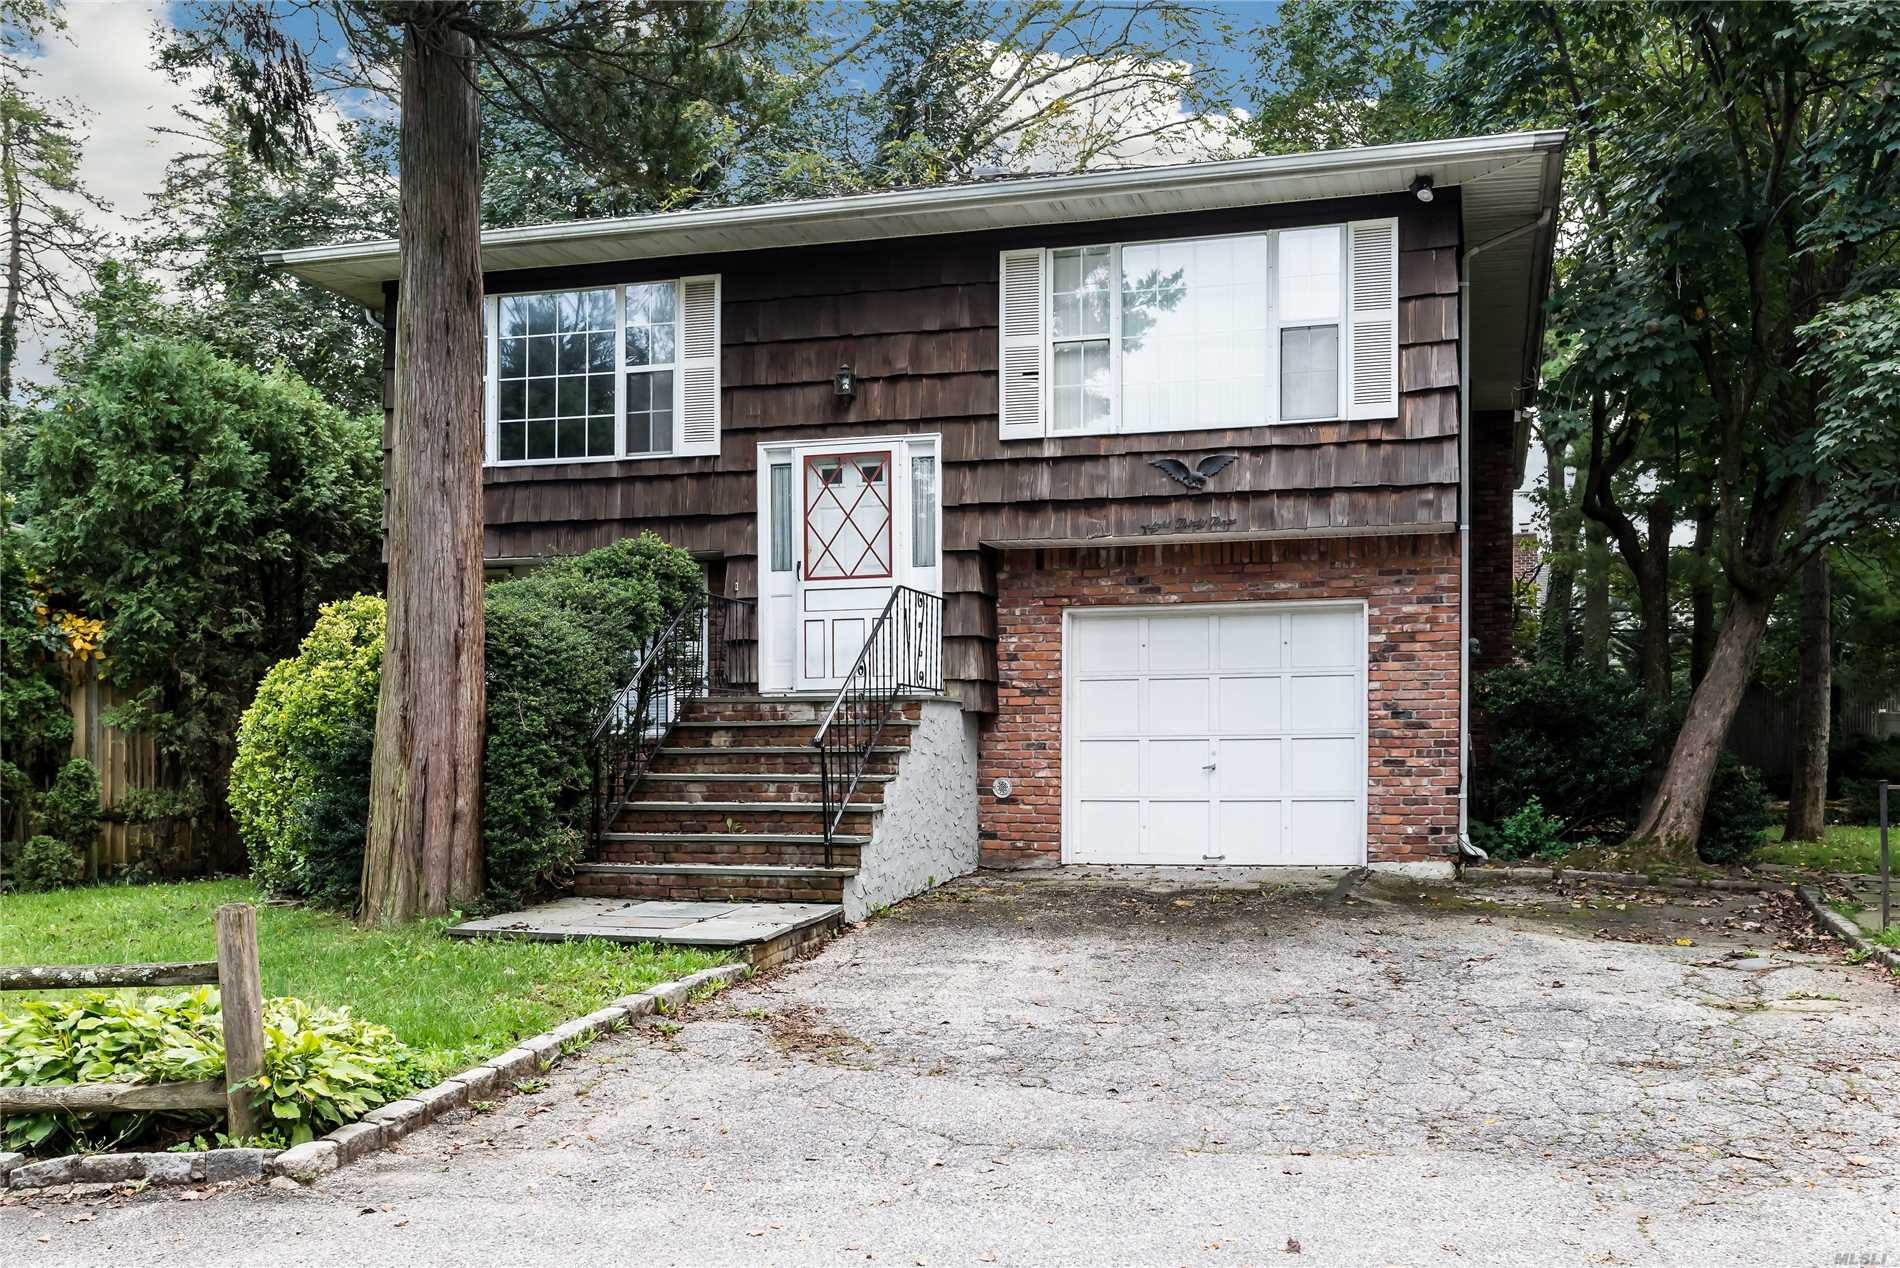 Enjoy Privacy In This Lovely Spot On A Private Road. Well Maintained Very Spacious 4/5 Br Hi Ranch. Possible Mother/Daughter With Proper Permits.Shy 1/4 Acre W/ Great Backyard Which Is Mostly Fenced In. Move Right In.